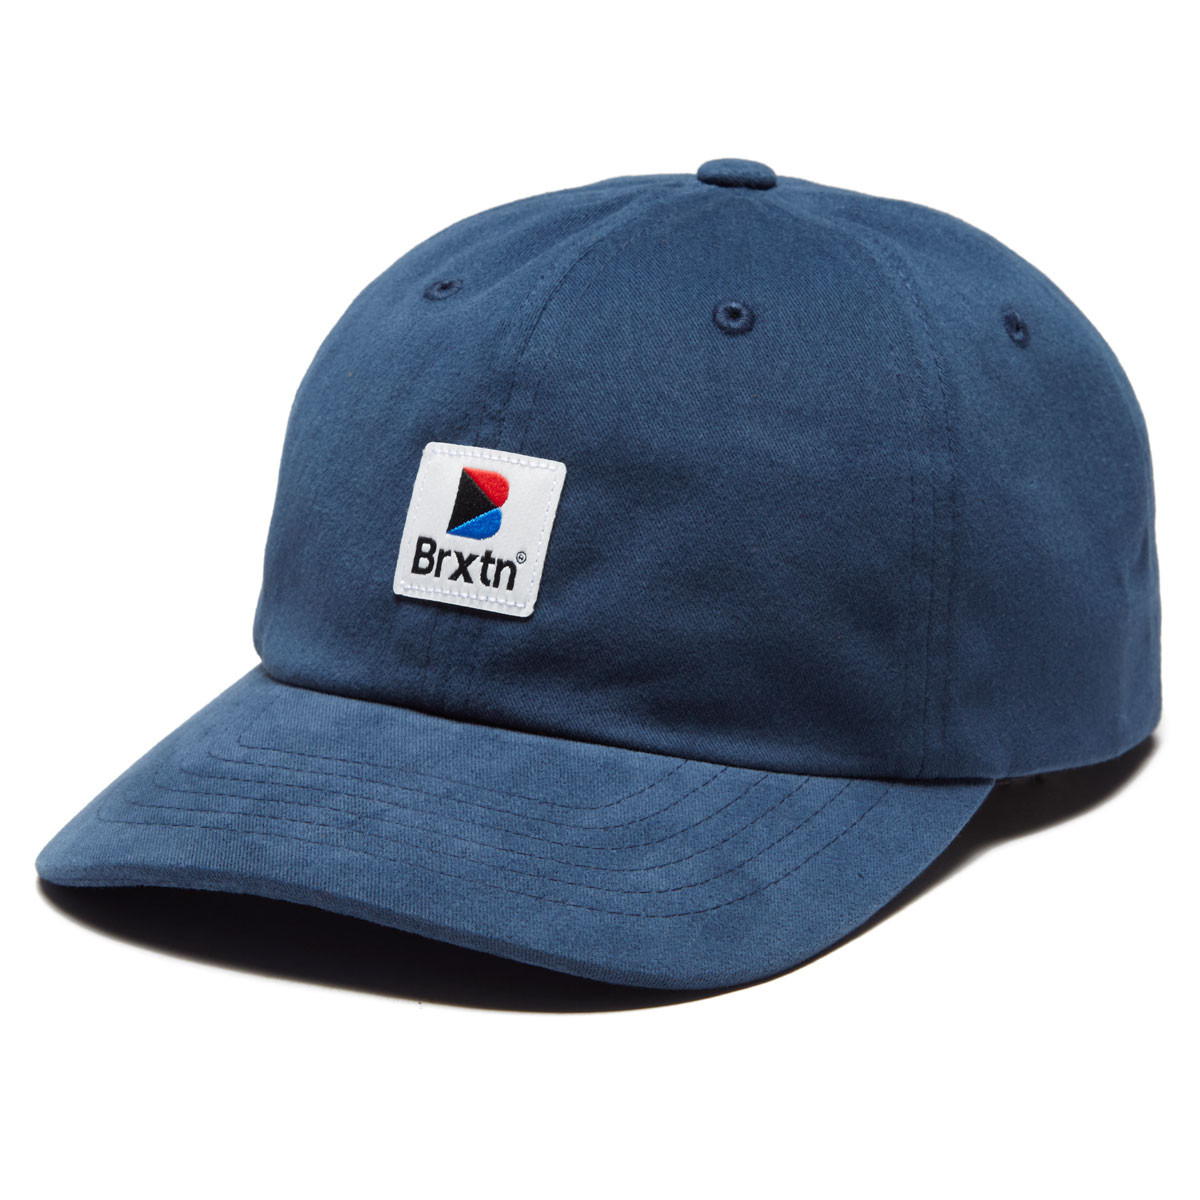 Brixton Stowell Mp Hat - Washed Navy 1d1851b7e38